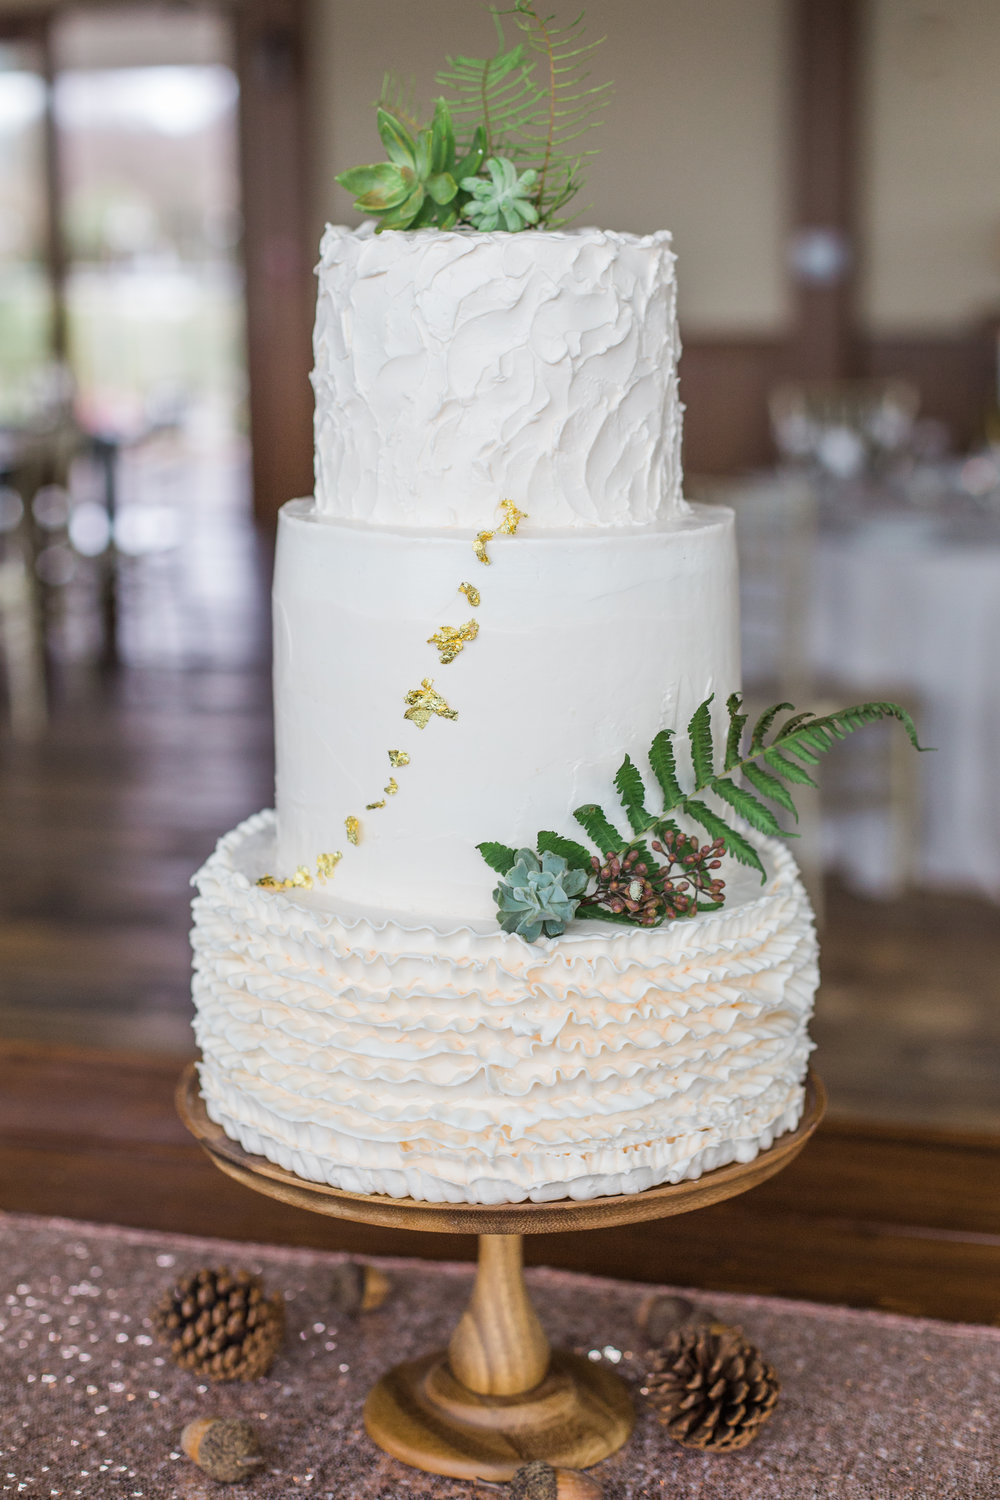 Charleston Harbor Resort & Marina Eco-friendly Rustic Elegant Wedding Cake with Succulents, Ferns and Magnolia | Charleston Wedding Planners Scarlet Plan & Design